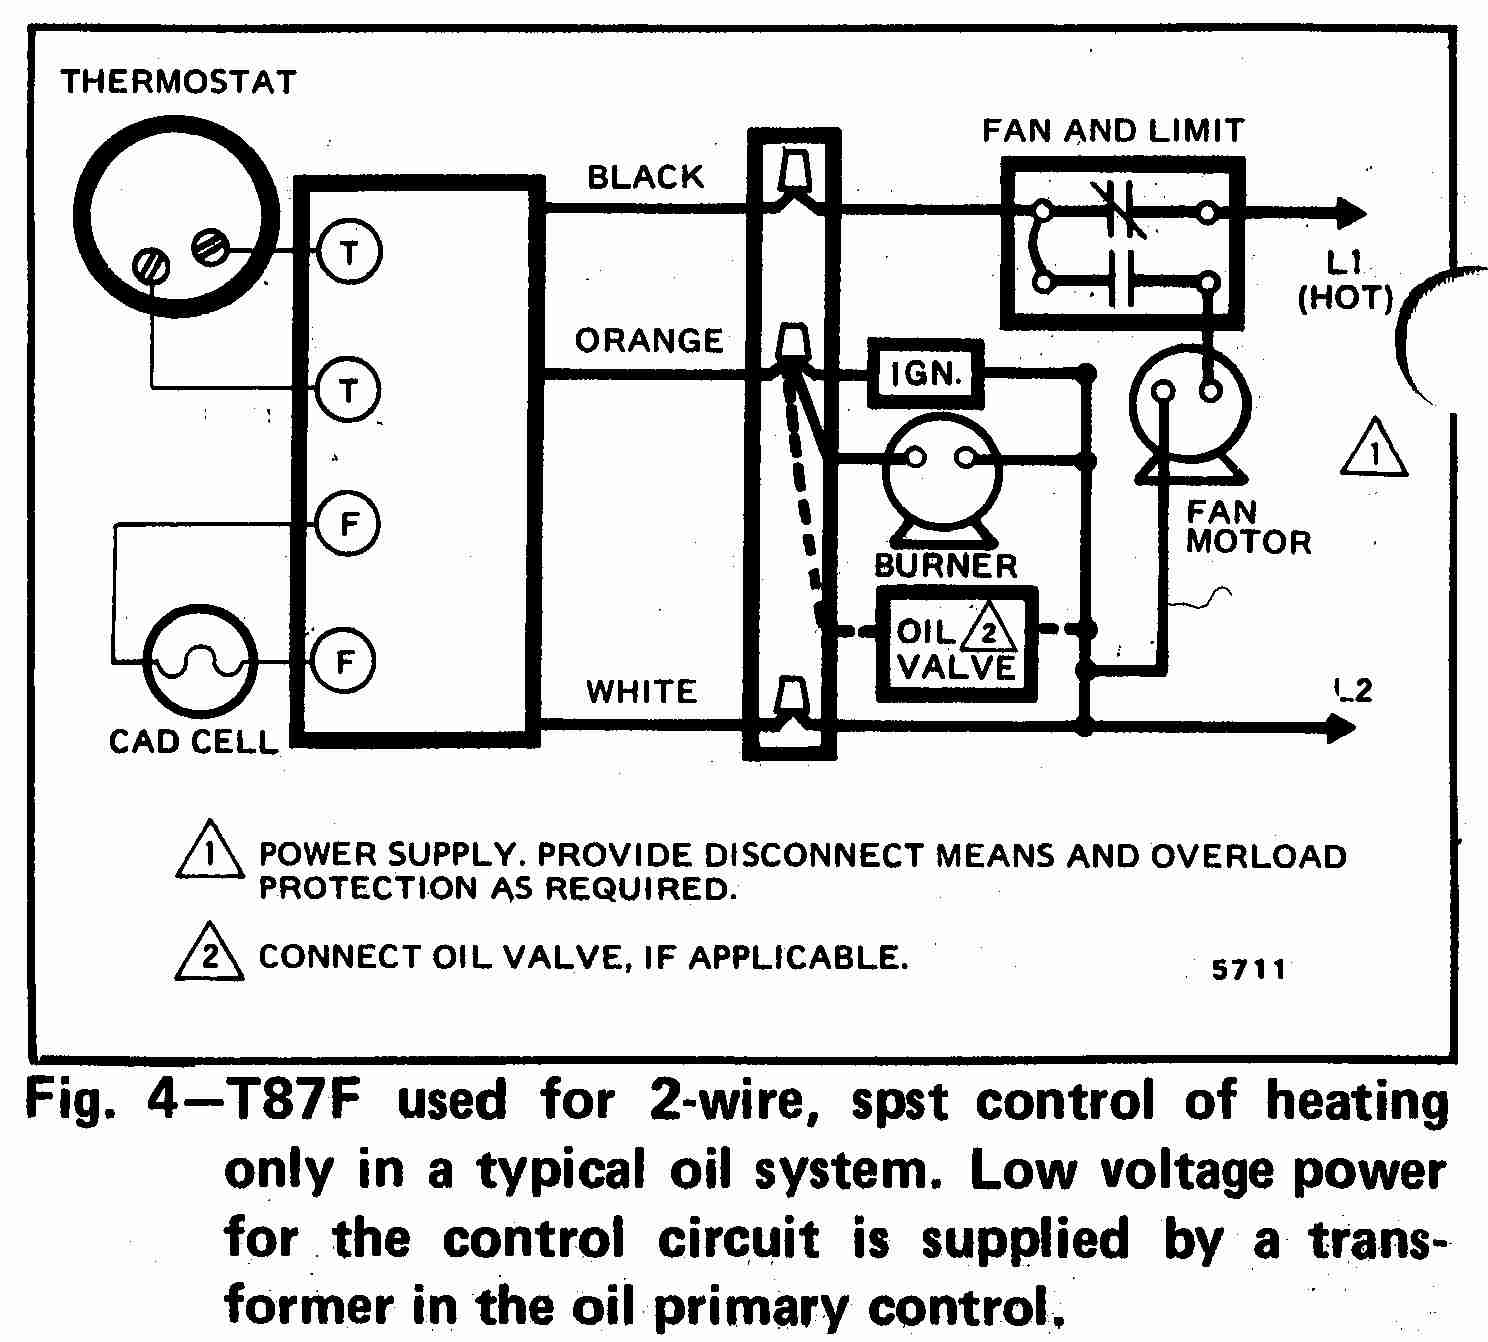 honeywell t87f thermostat wiring diagram for 2-wire, spst control of  heating only in room thermostat wiring diagrams for hvac systems